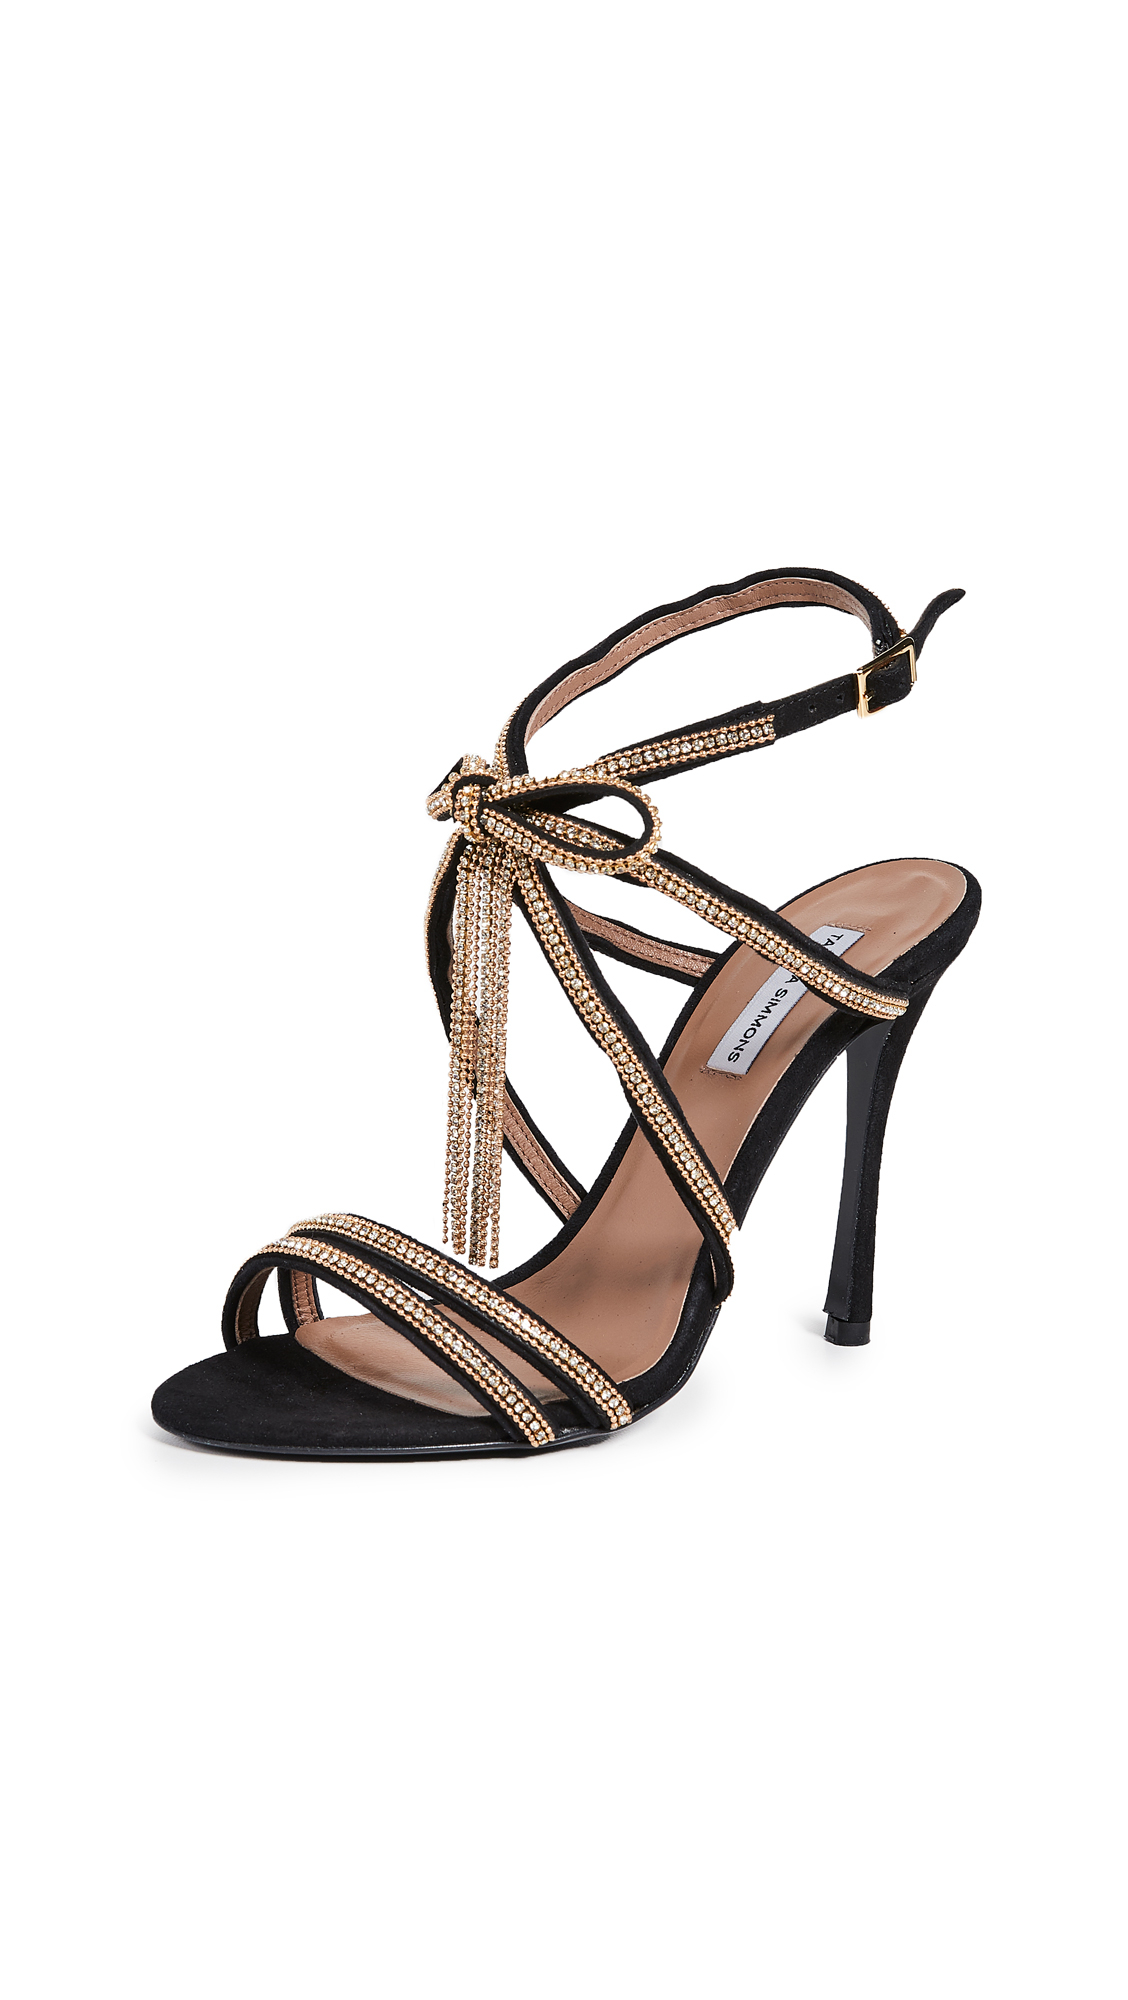 Tabitha Simmons Iceley Sandals - Black/Gold Strass Chain